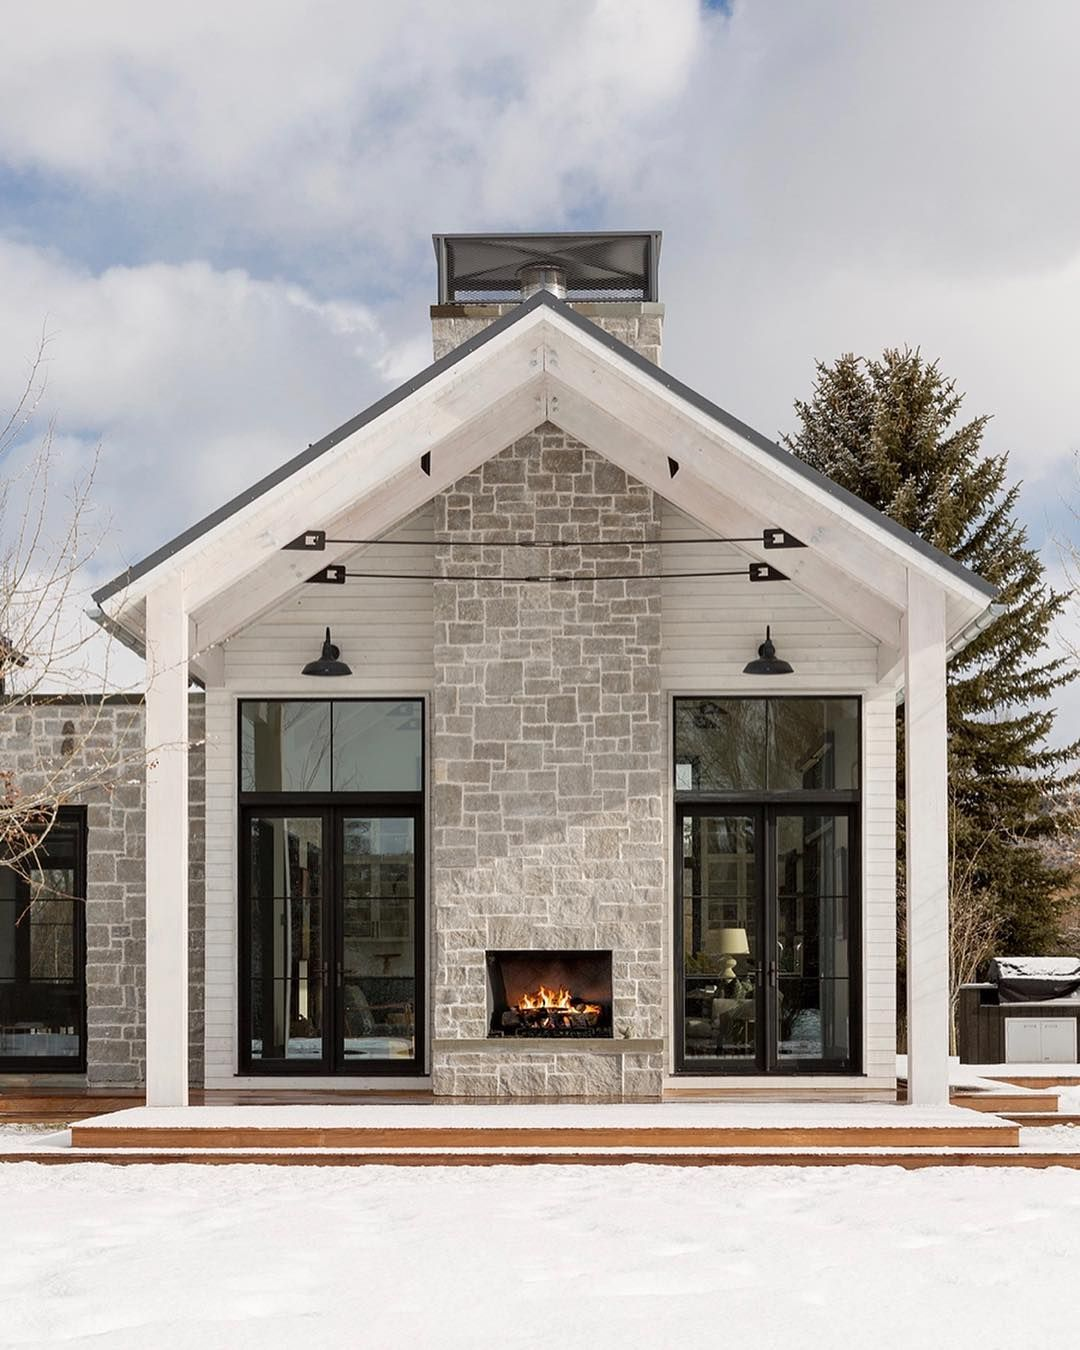 Studio Mcgee On Instagram Today S Weather In Utah Was And More Reminded Me Of The Snowy Modern Farmhouse Exterior House Exterior Farmhouse Exterior